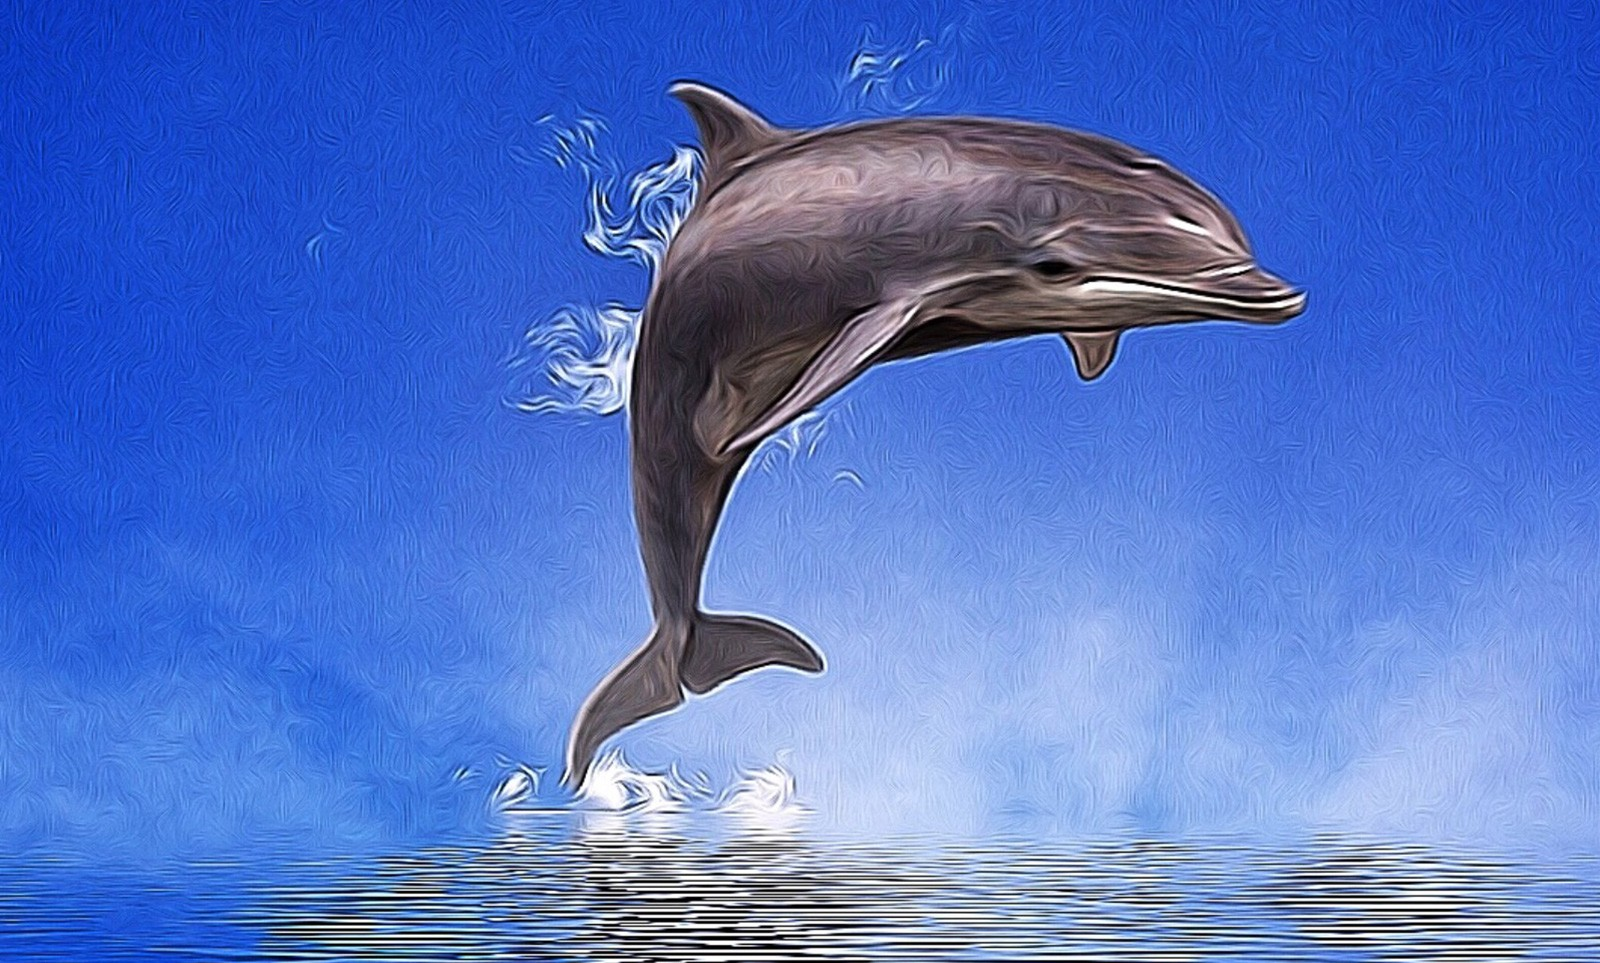 Dolphin Tattoo Ideas And Dolphin Meanings On Whats-Your-Sign